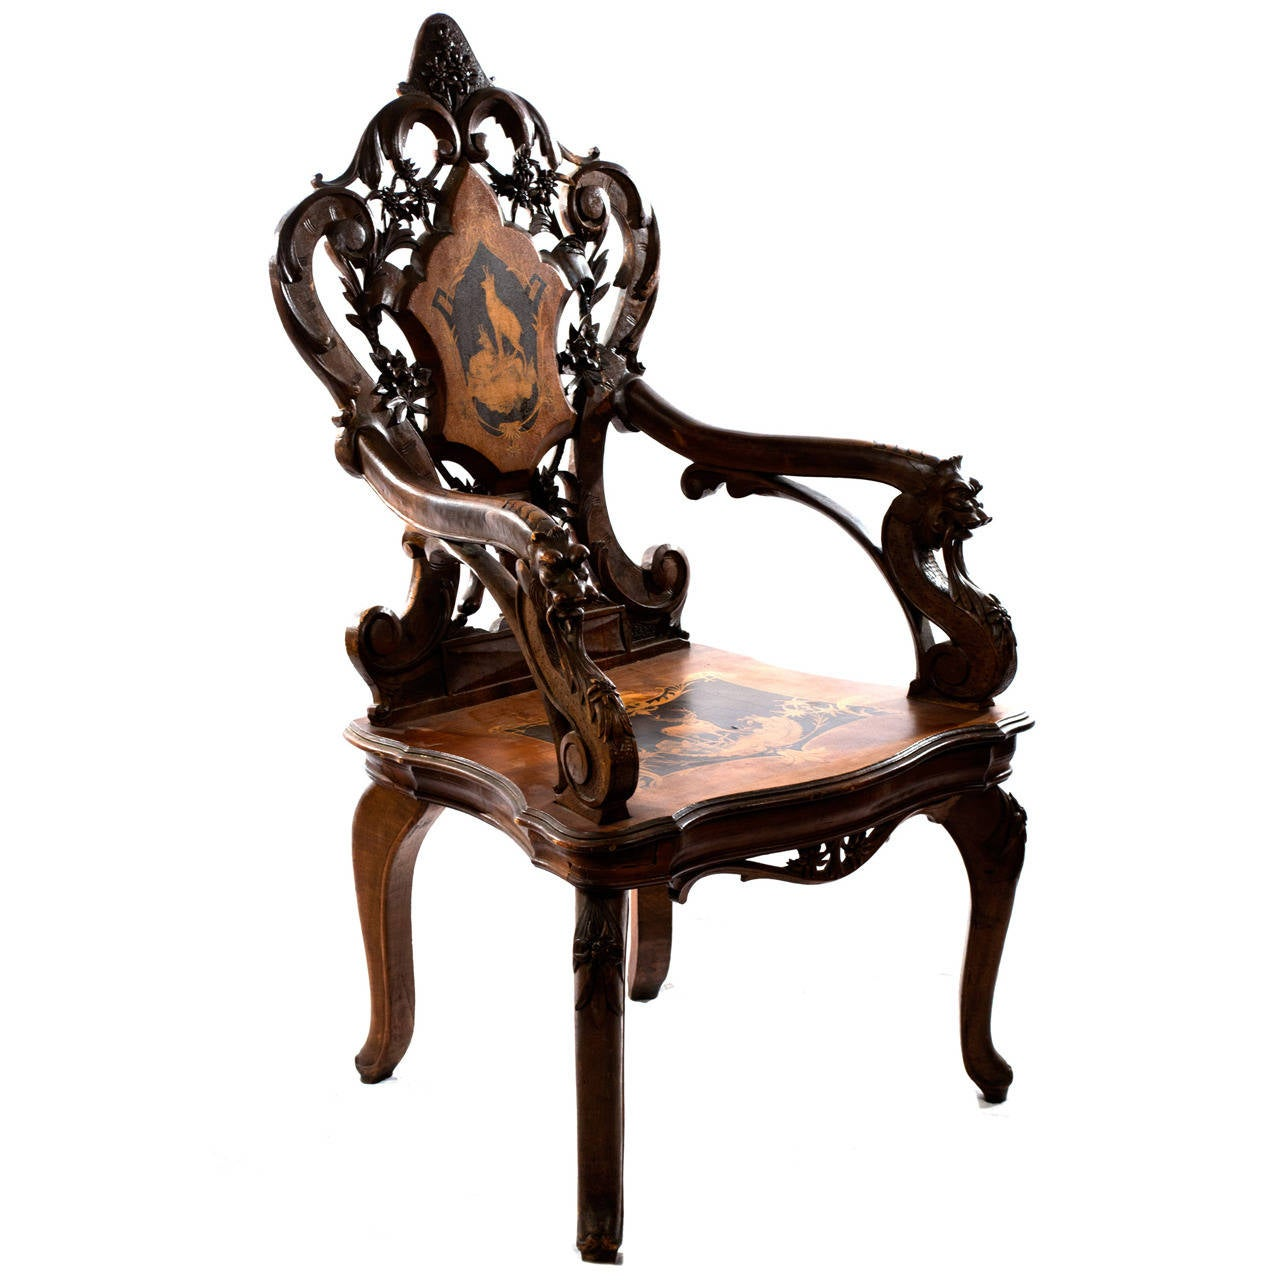 High Quality Elaborately Carved Black Forest Armchair With Hidden Compartment 1